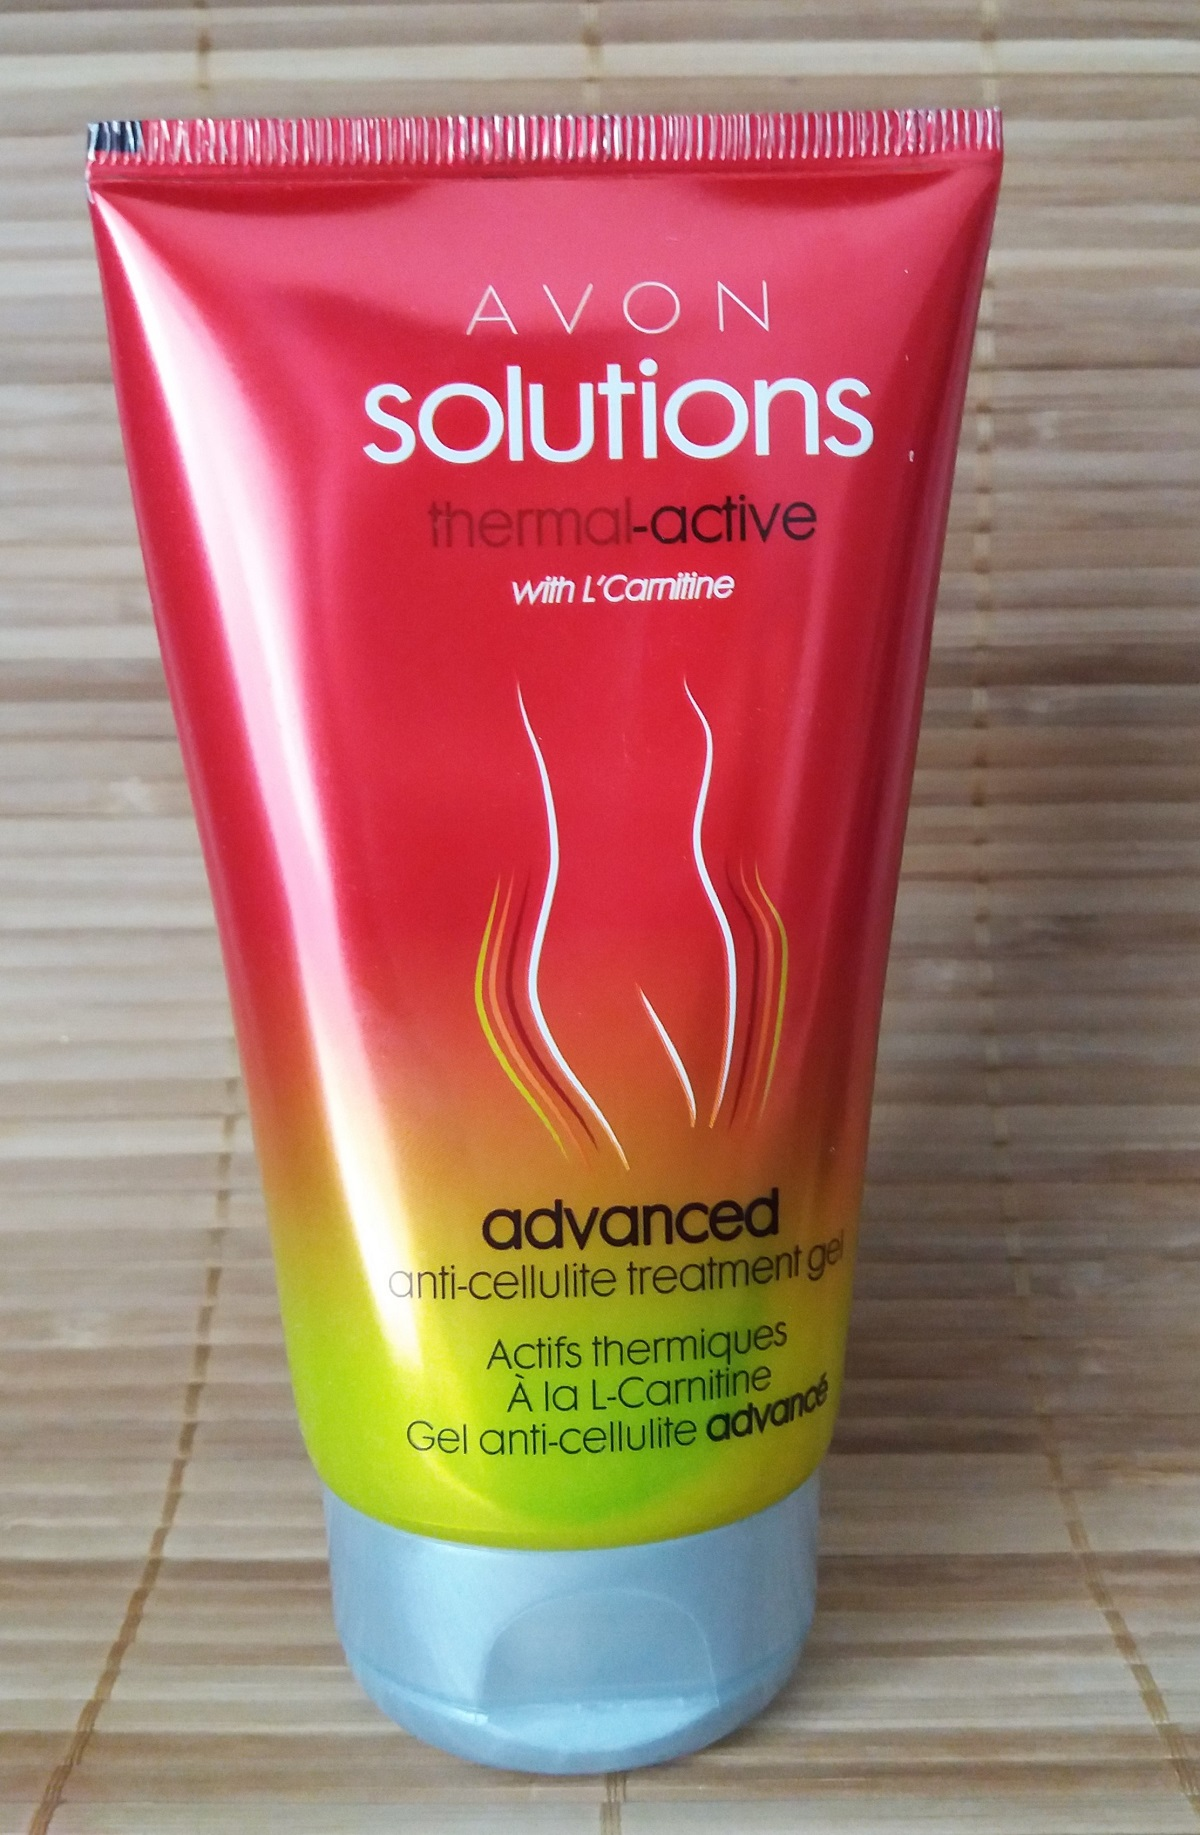 Avon Solutions Advanced Anti-cellulite